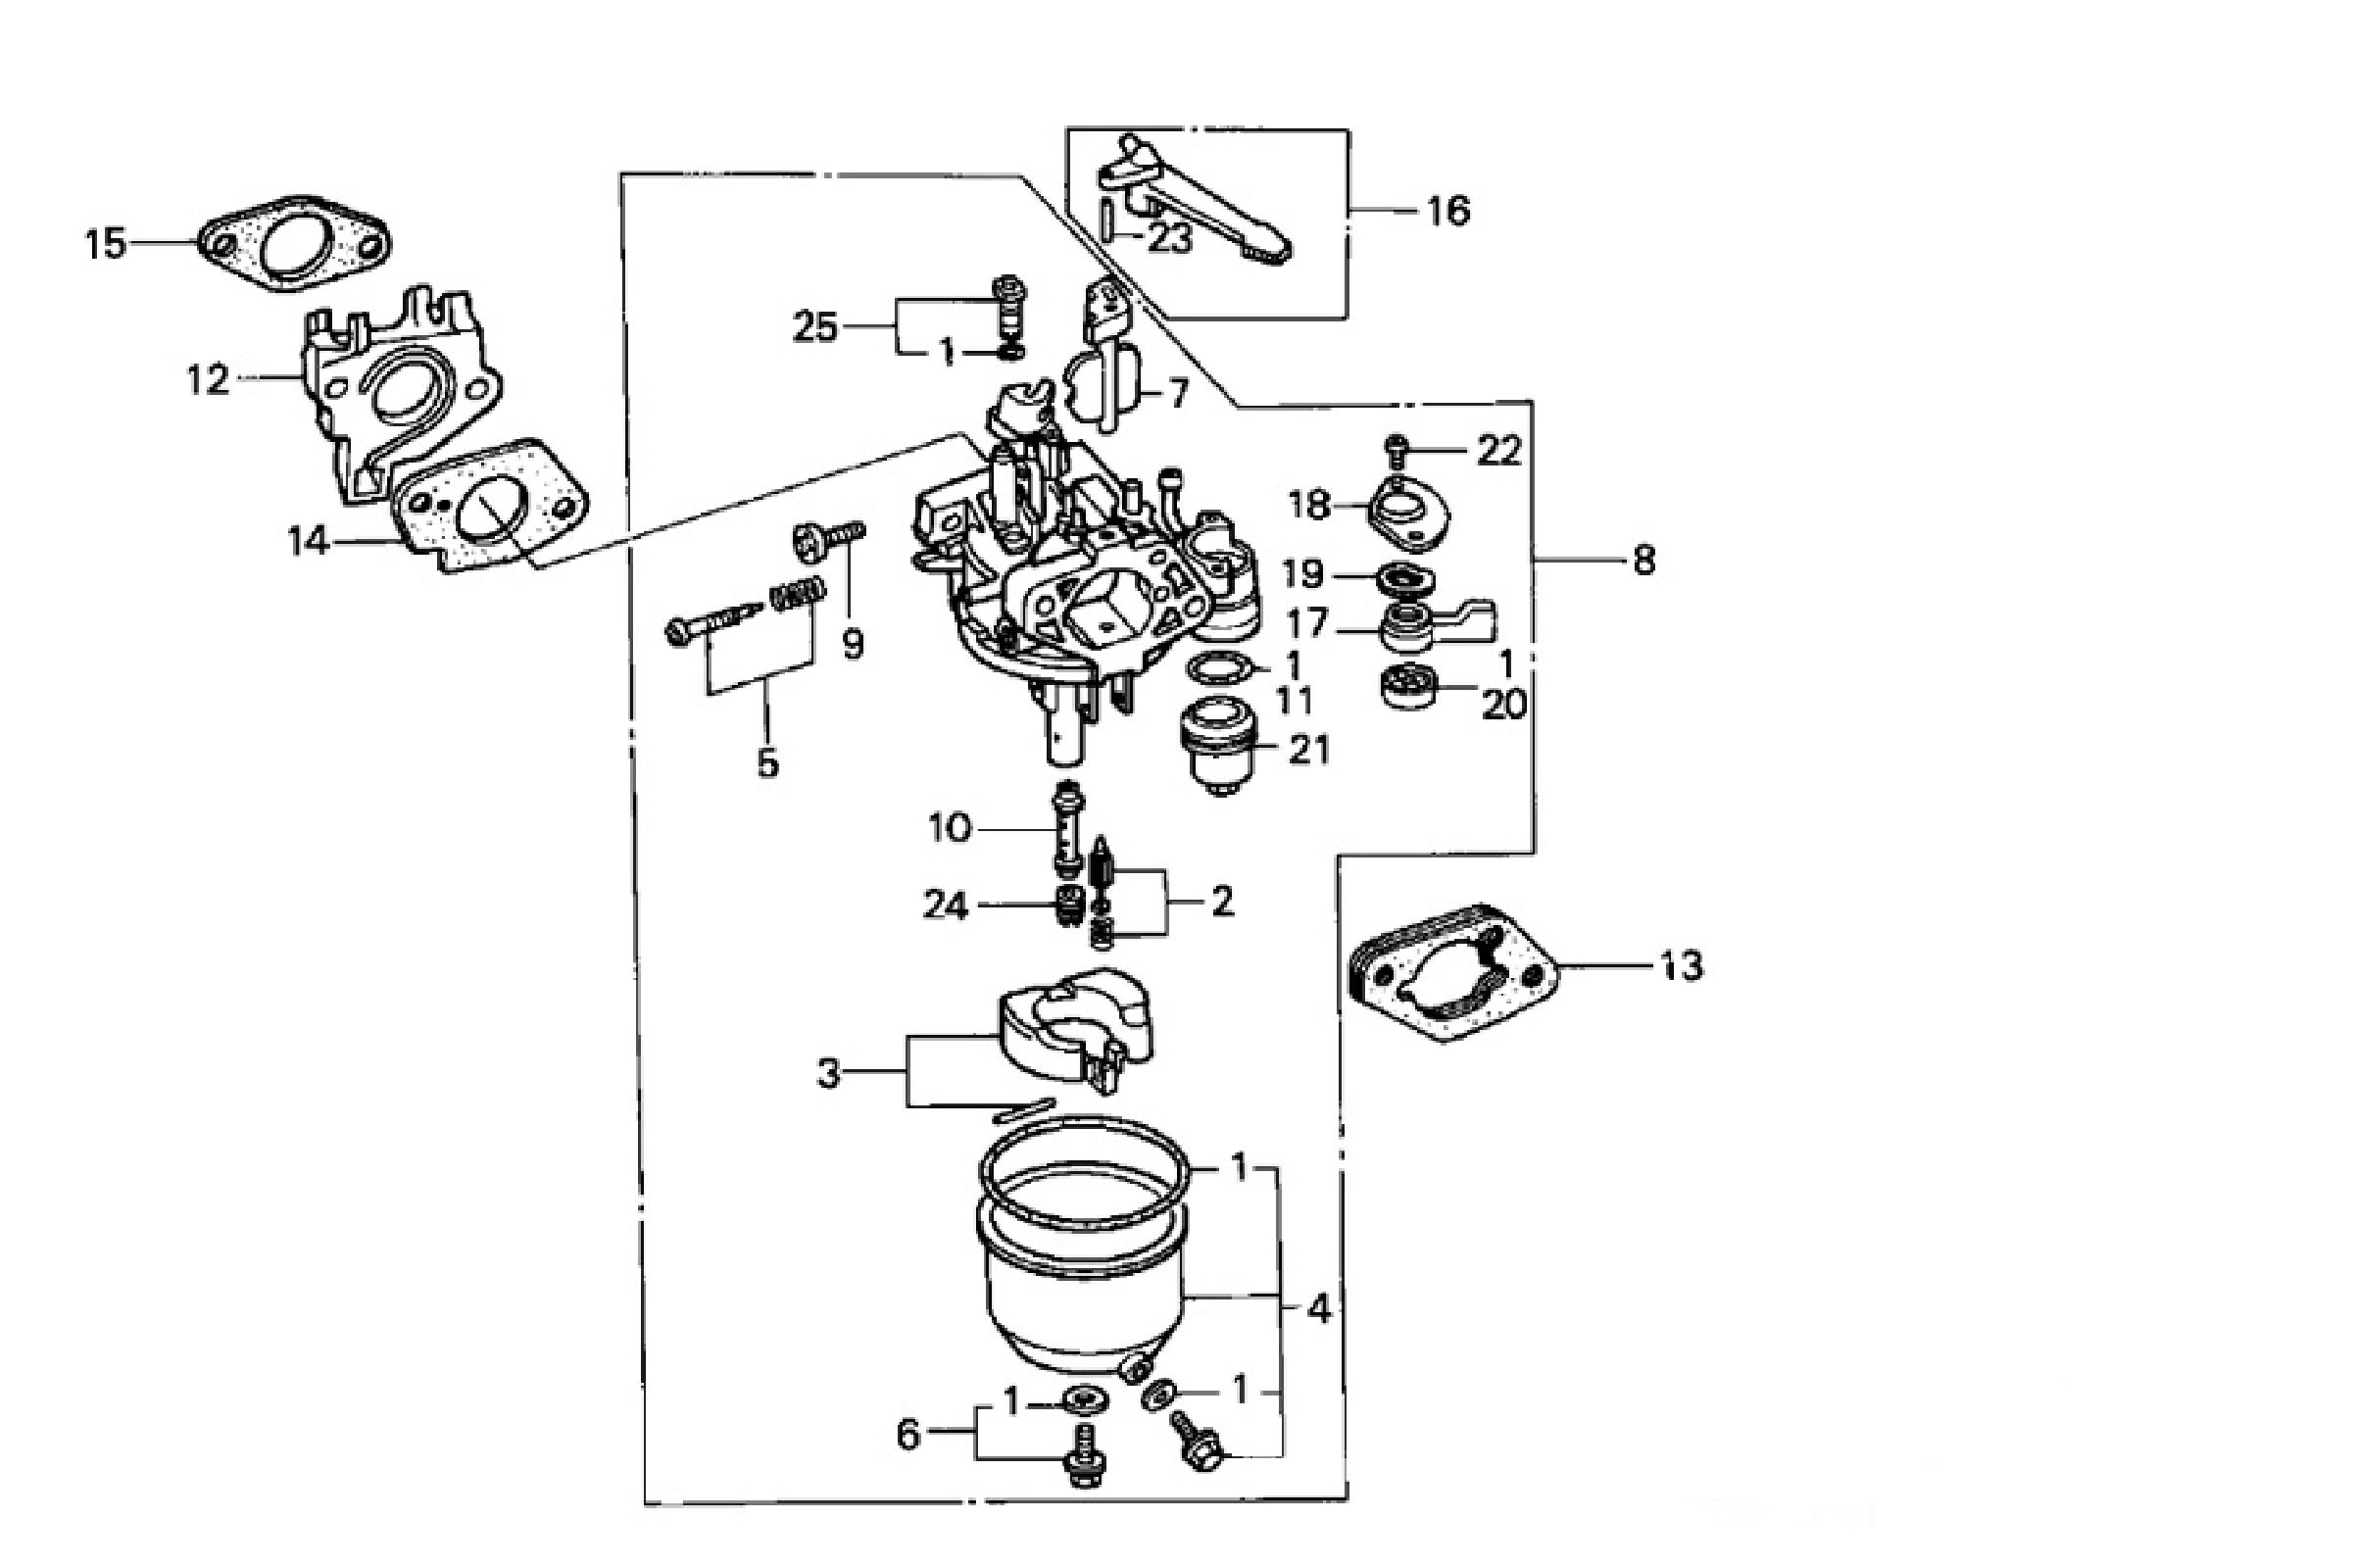 Honda Gx Parts Diagram Engines Honda Gx Hgi Parts together with Diagram furthermore Diagram likewise Honda Sk M Dio Spain Wire Harness Ignition Coil Bigecahps F A Bc in addition Carb. on honda gx340 engine parts diagram